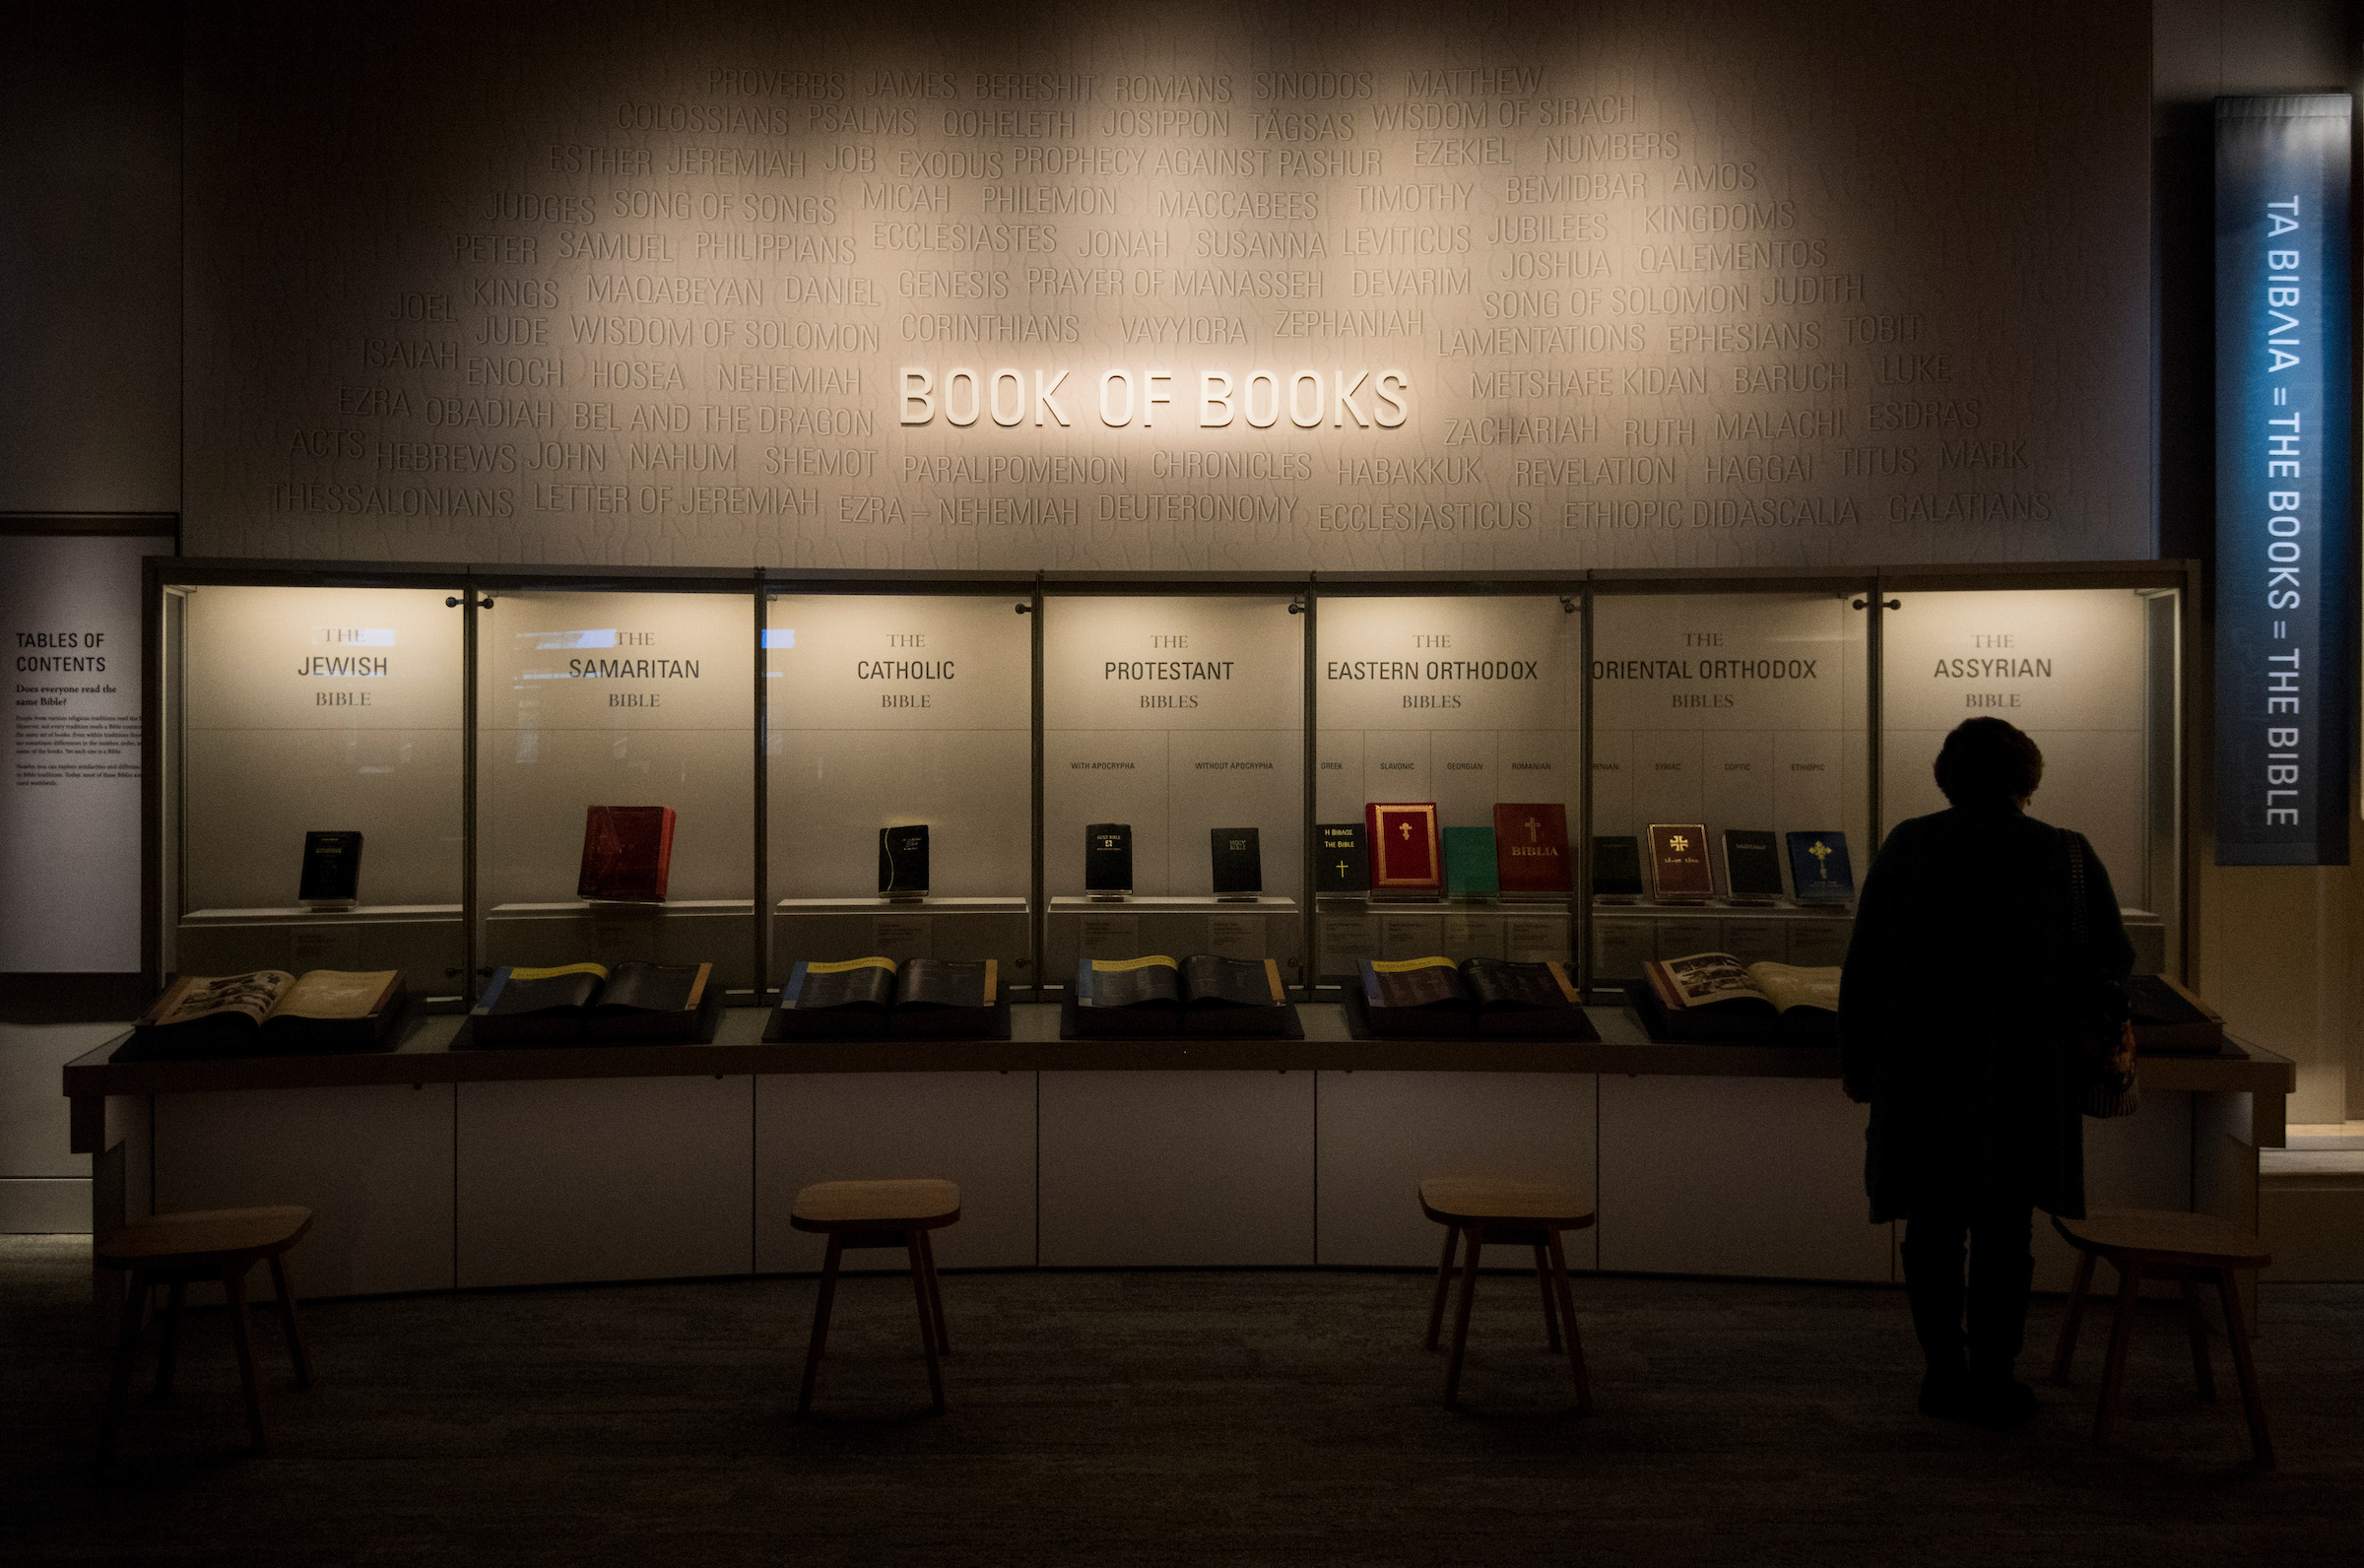 UNITED STATES - NOVEMBER 15: A visitor looks at a display of bibles at the Museum of the Bible on Wednesday, Nov. 15, 2017. (Photo By Bill Clark/CQ Roll Call)